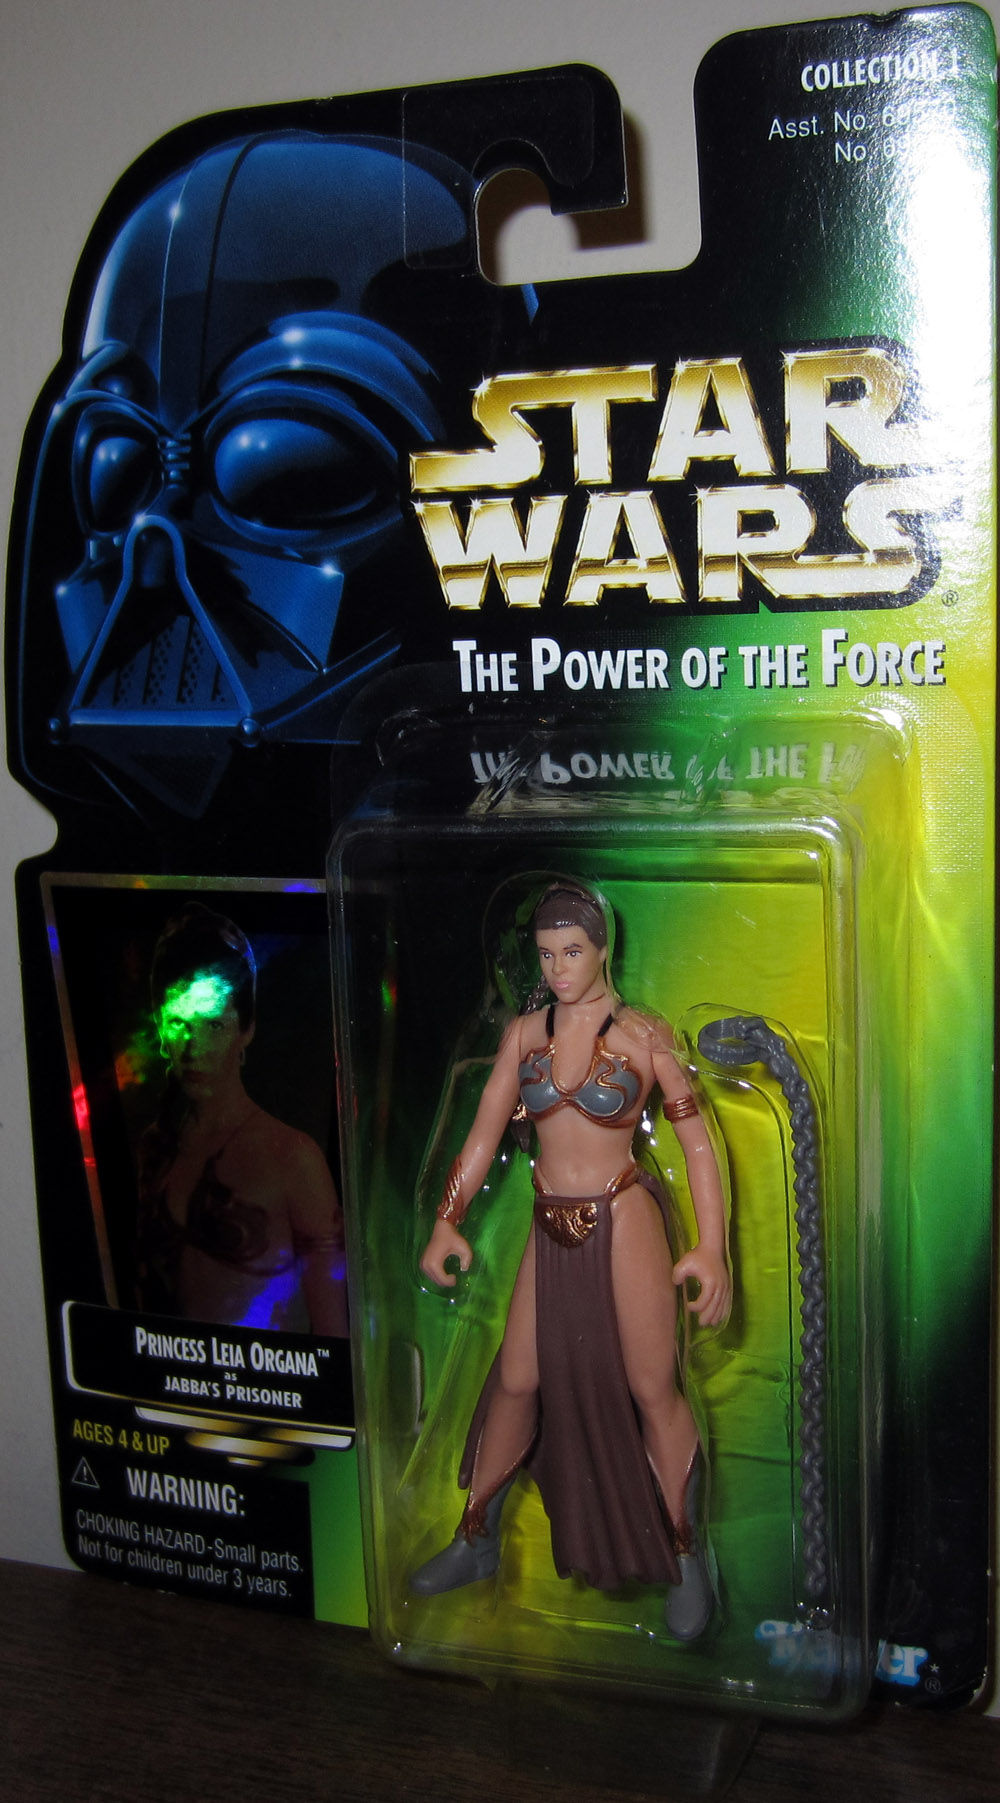 Princess Leia Organa as Jabba's Prisoner (green card)